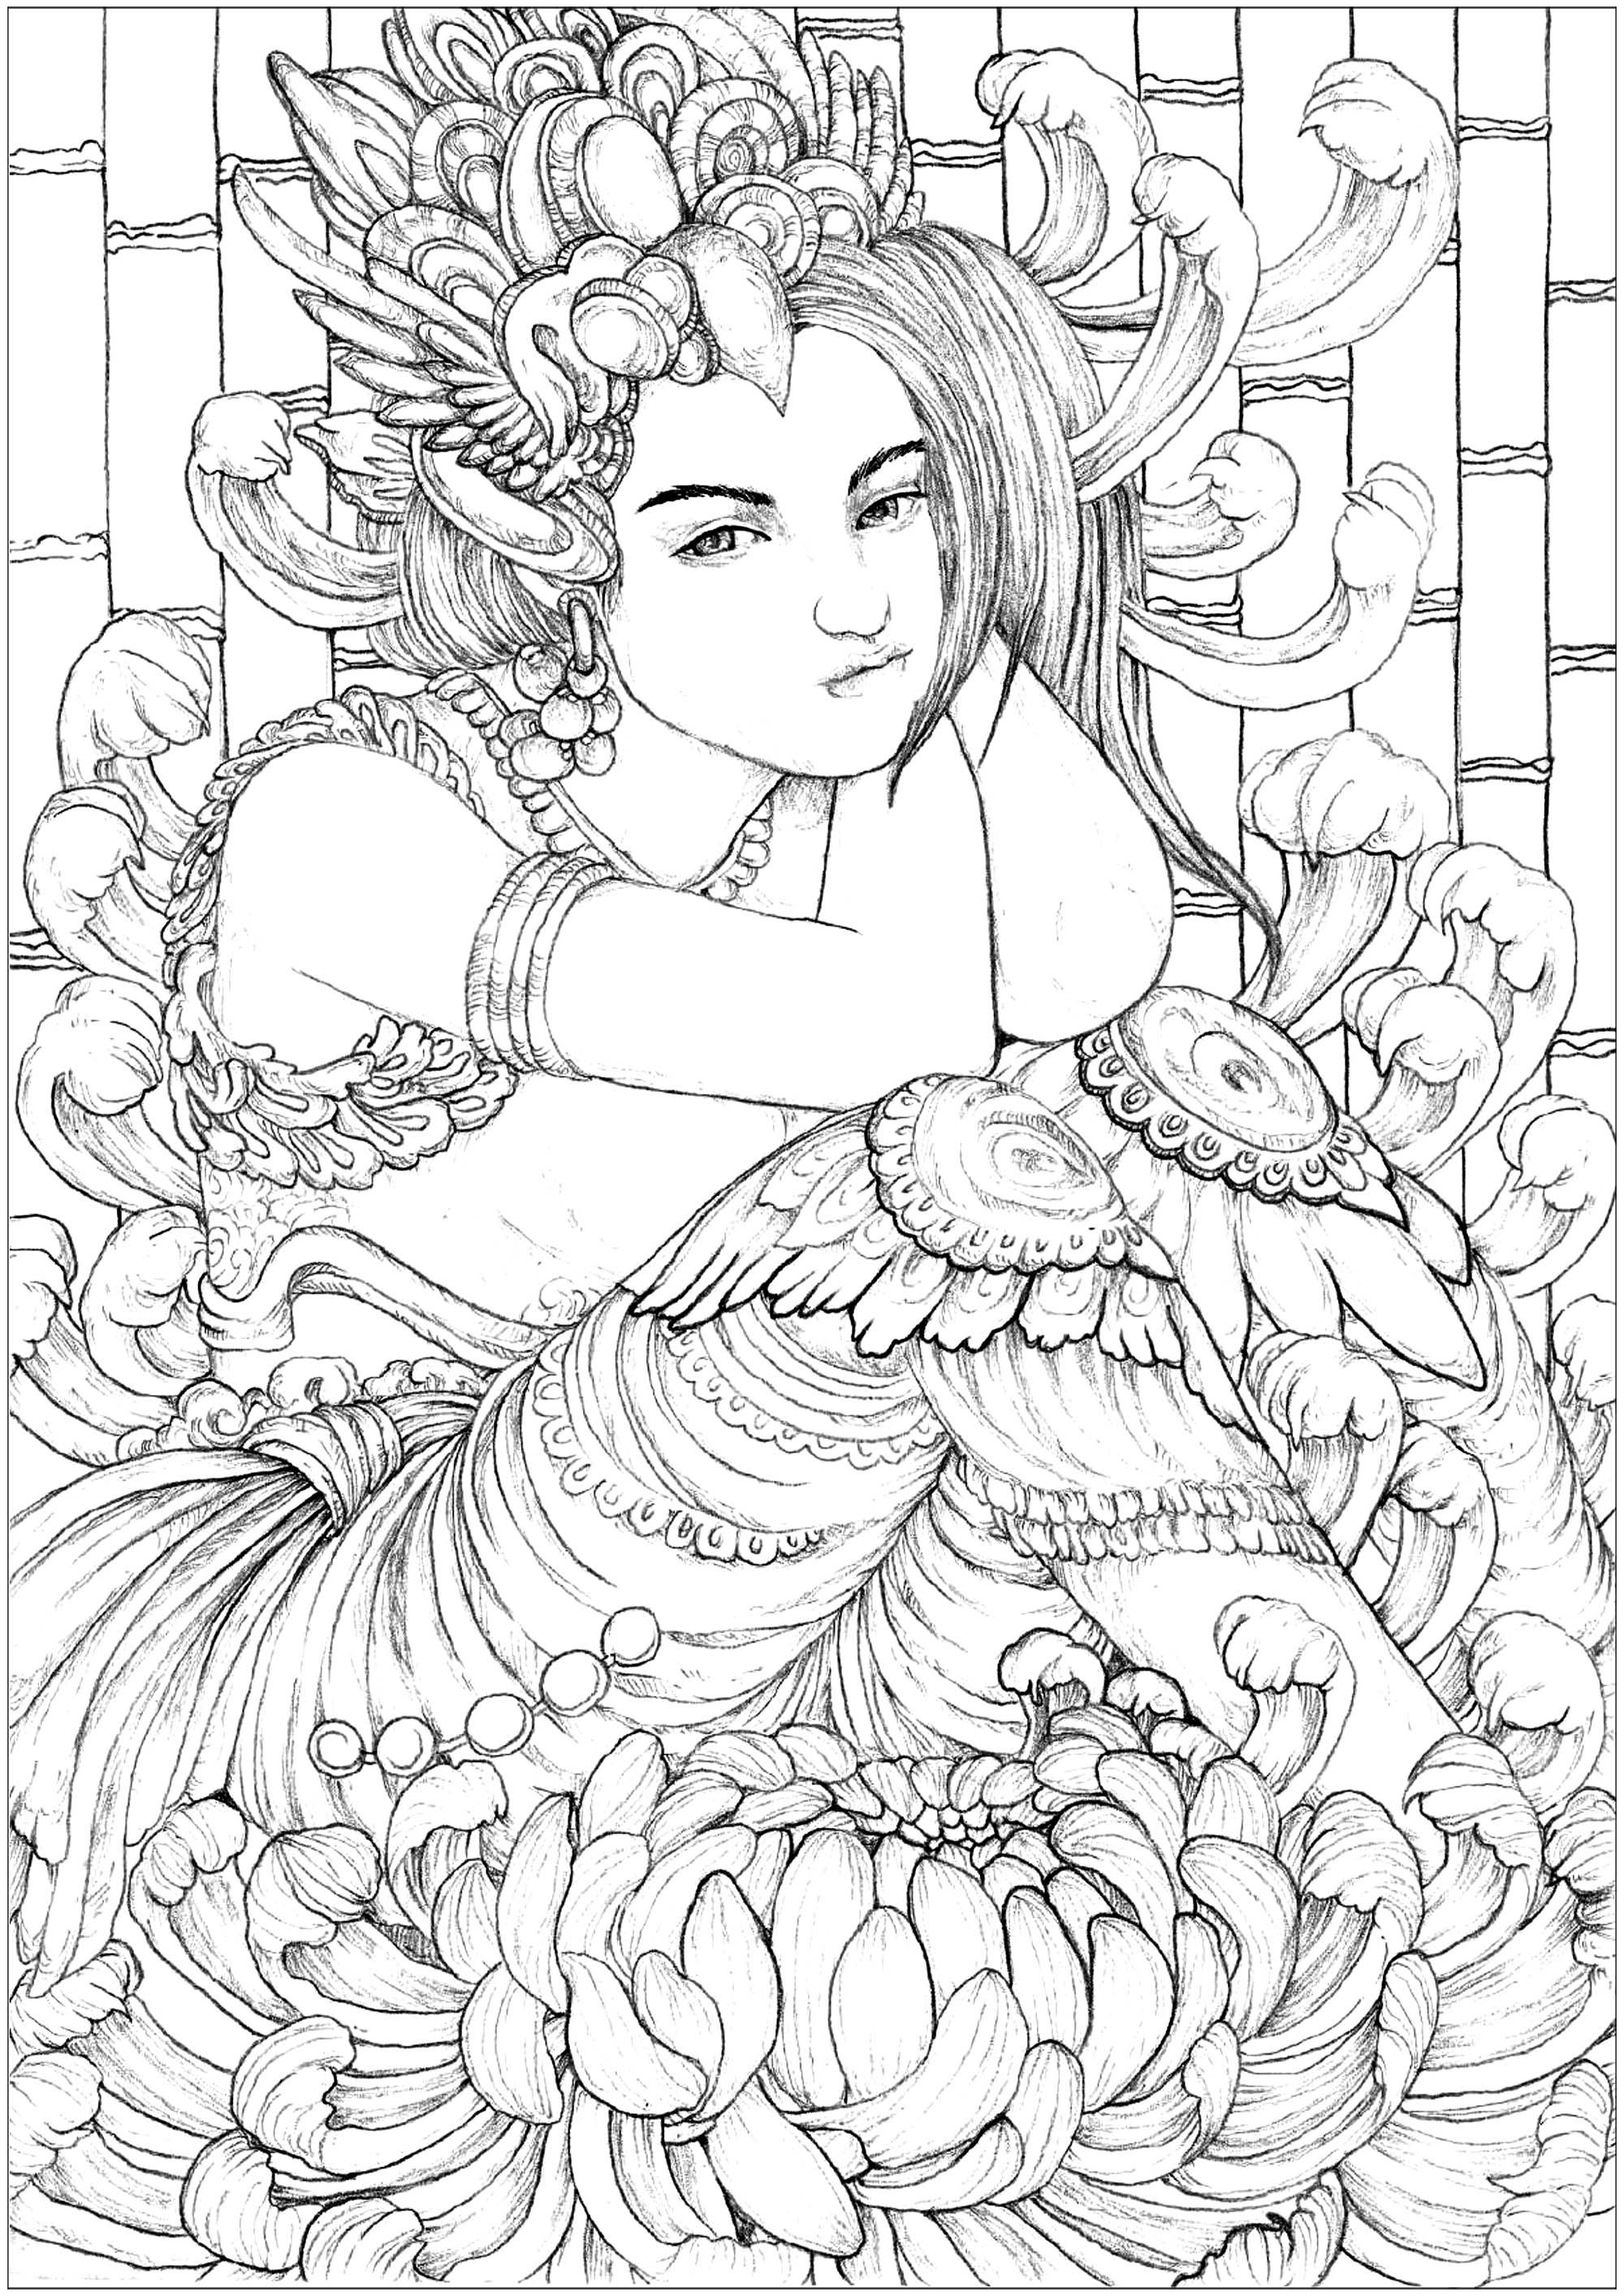 Hiwaga Woman Hiwaga Means Mystery In Tagalog Tagalog Is An Austronesian Language Spoken As A Puppy Coloring Pages Coloring Pages For Girls Coloring Pages